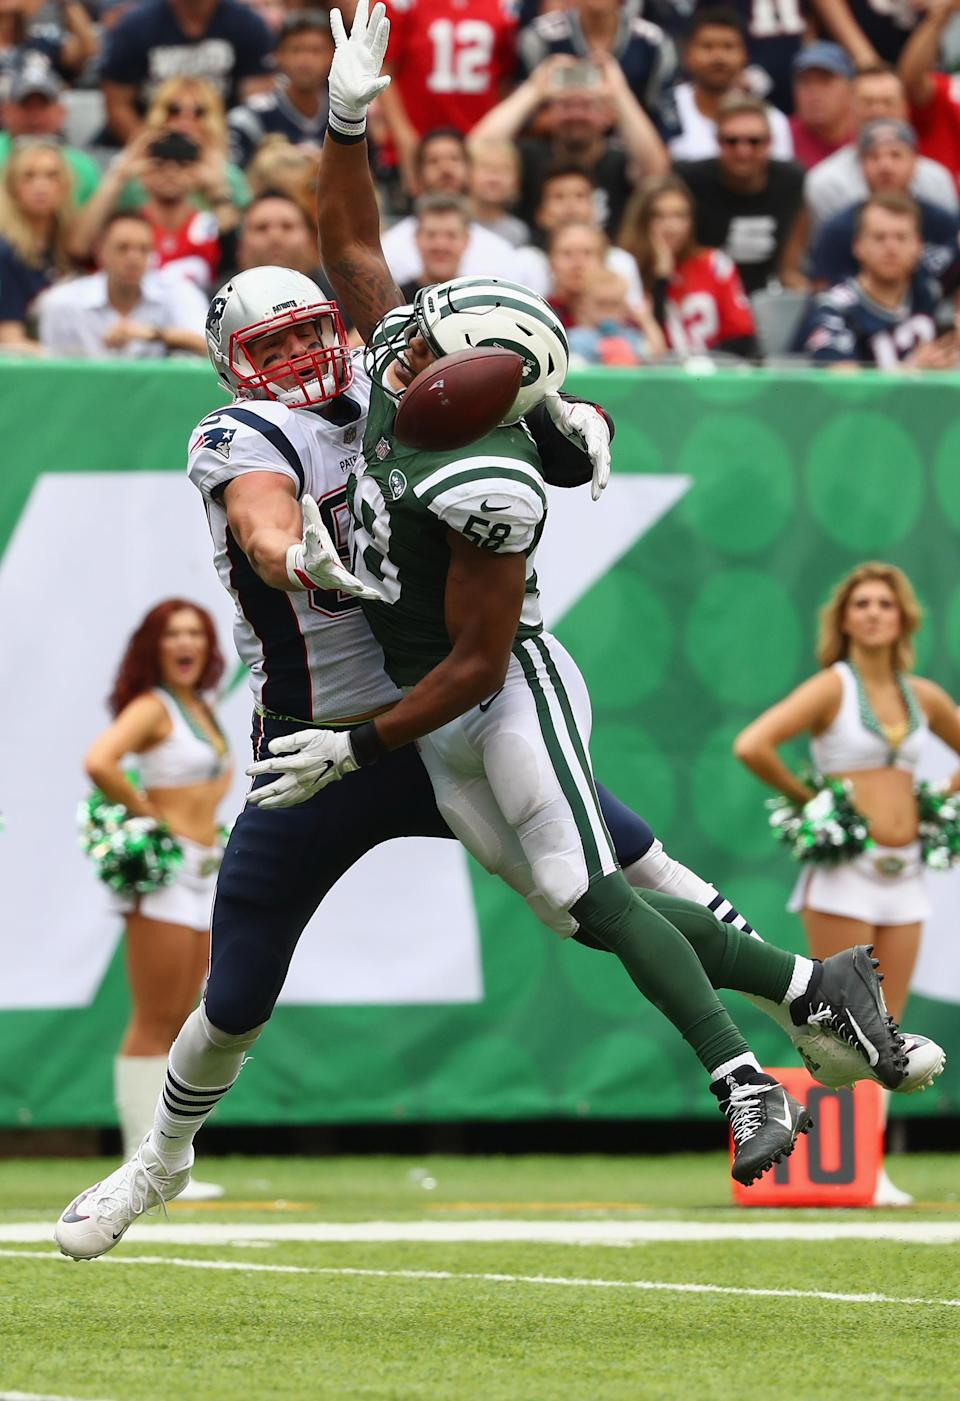 <p>Tight end Rob Gronkowski #87 of the New England Patriots attempts to make a catch around inside linebacker Darron Lee #58 of the New York Jets during the second quarter of their game at MetLife Stadium on October 15, 2017 in East Rutherford, New Jersey. (Photo by Al Bello/Getty Images) </p>